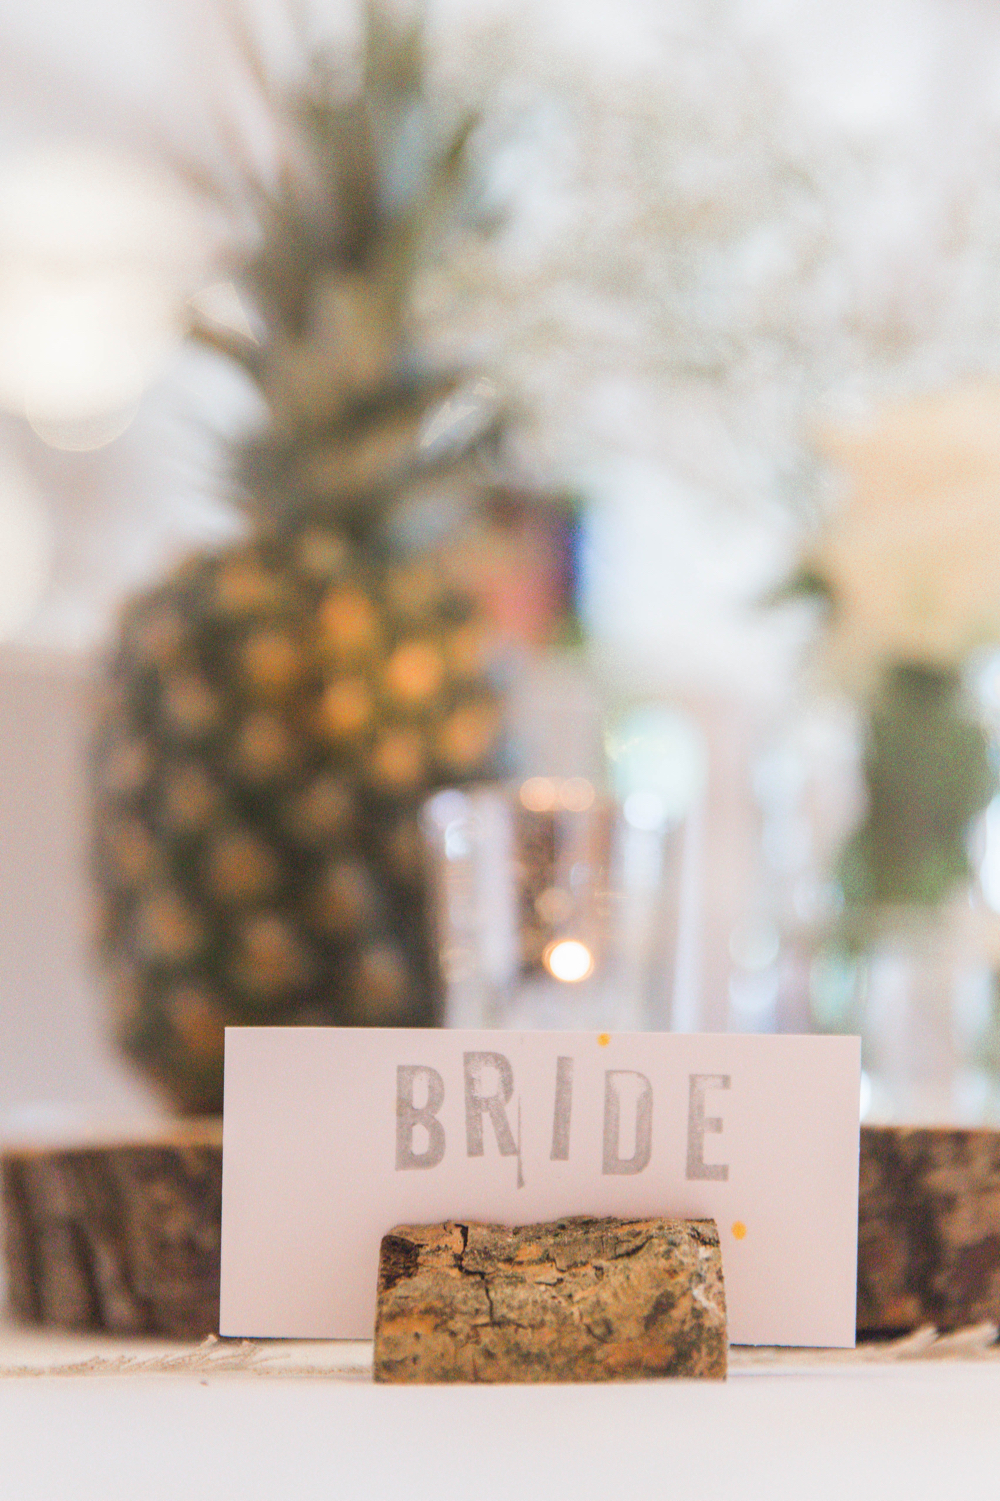 """A close up shot showing the detail of the table decor. There is a large  pineapple in the background sitting on a log slice. The table linen is white and there is a table place name set in a wooden holder. The sign says \""""BRIDE\""""."""